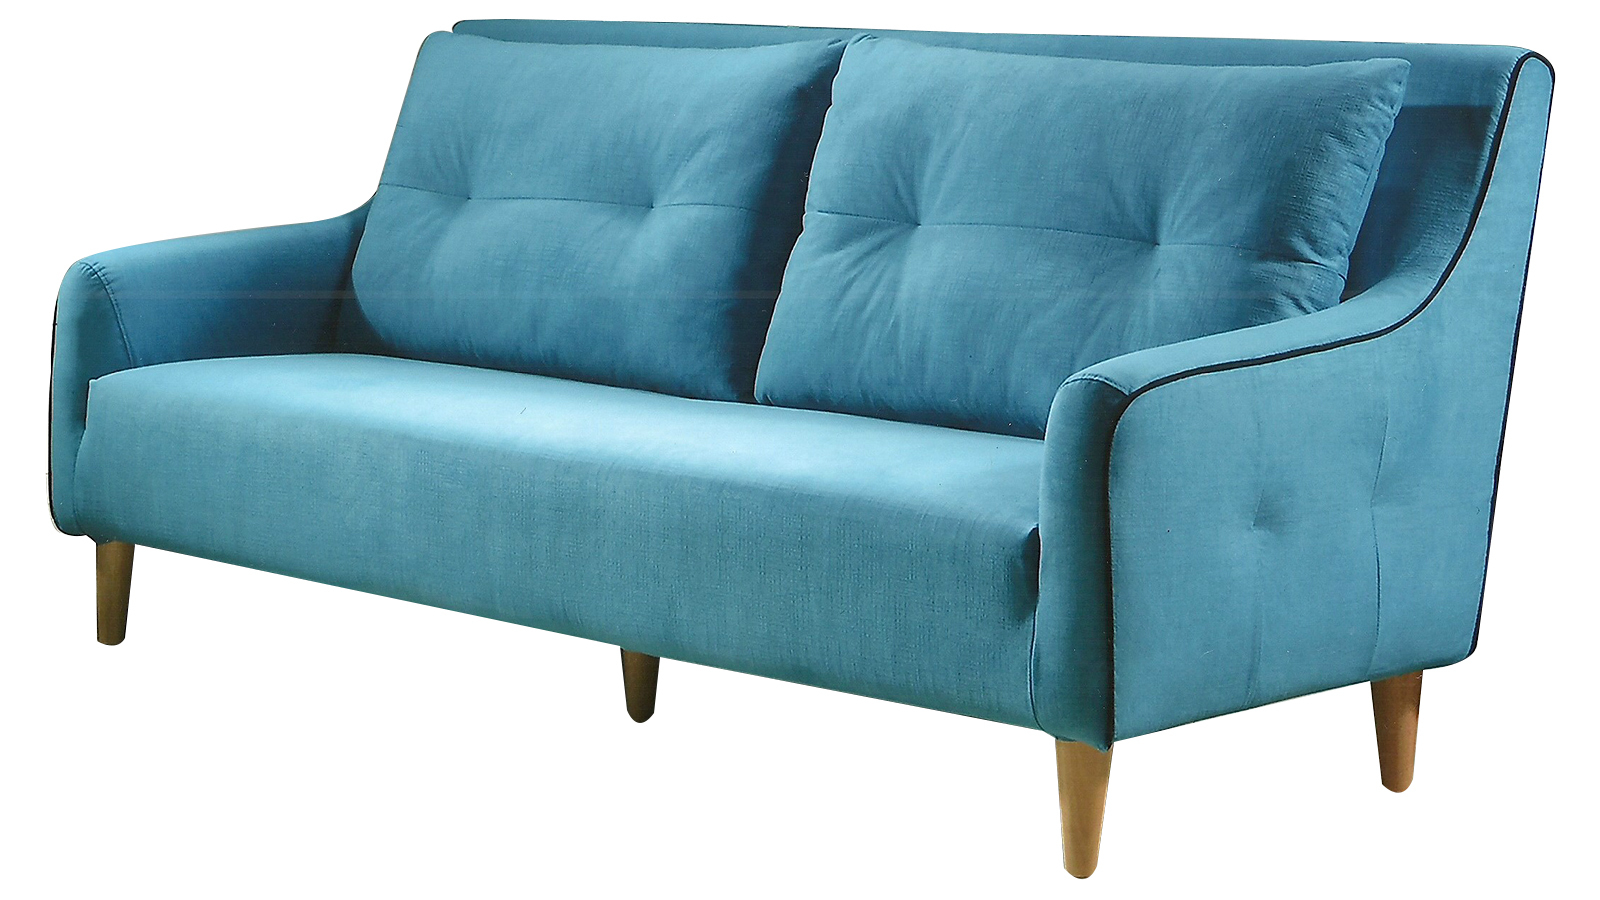 sofa grayson 3 seater.jpg